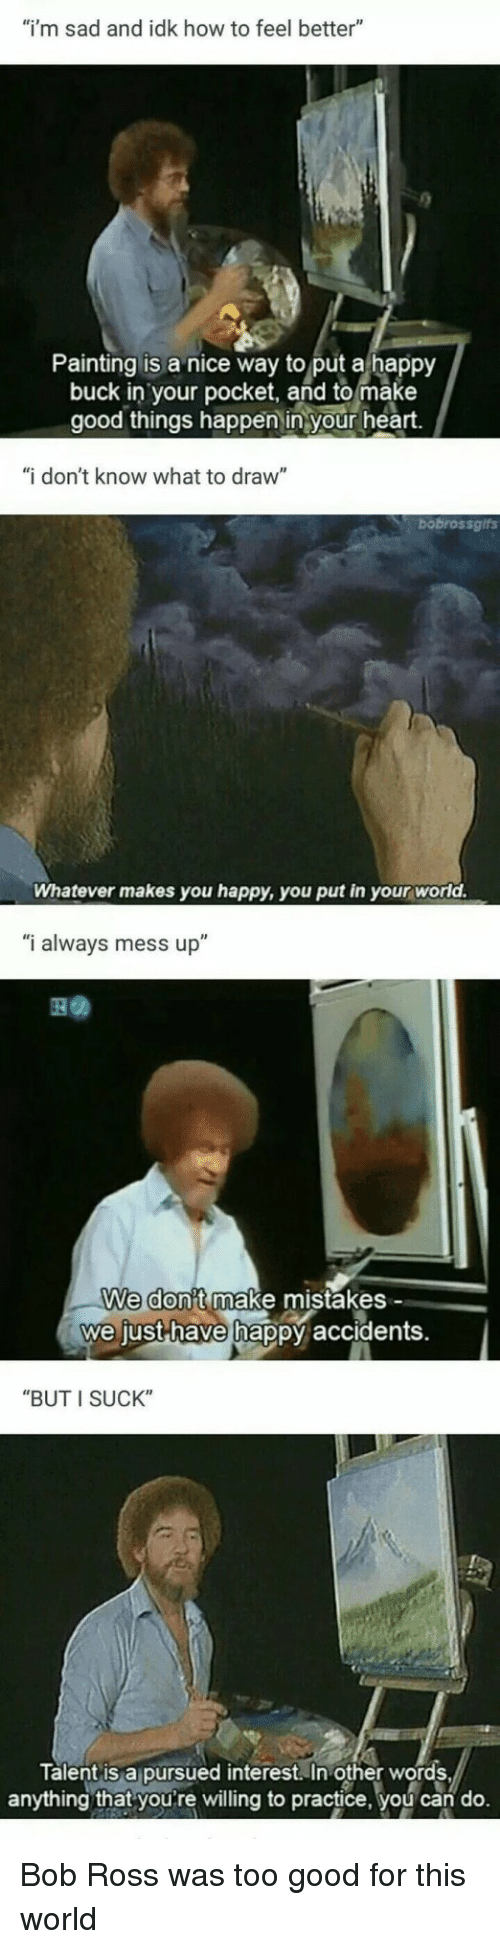 """Bob Ross, Good, and Happy: """"i'm sad and idk how to feel better""""  Painting is a nice way to put a happy  buck in your pocket, and to make  good things happen in your heart.  """"i don't know what to draw""""  bobrossgifs  Whatever makes you happy, you put in your world.  """"i always mess up""""  We don't make mistakes -  we just-have hap  py accidents.  """"BUT I SUCK""""  Talent is a pursued interest. In other words  anything that youre willing to practice, you can do. Bob Ross was too good for this world"""